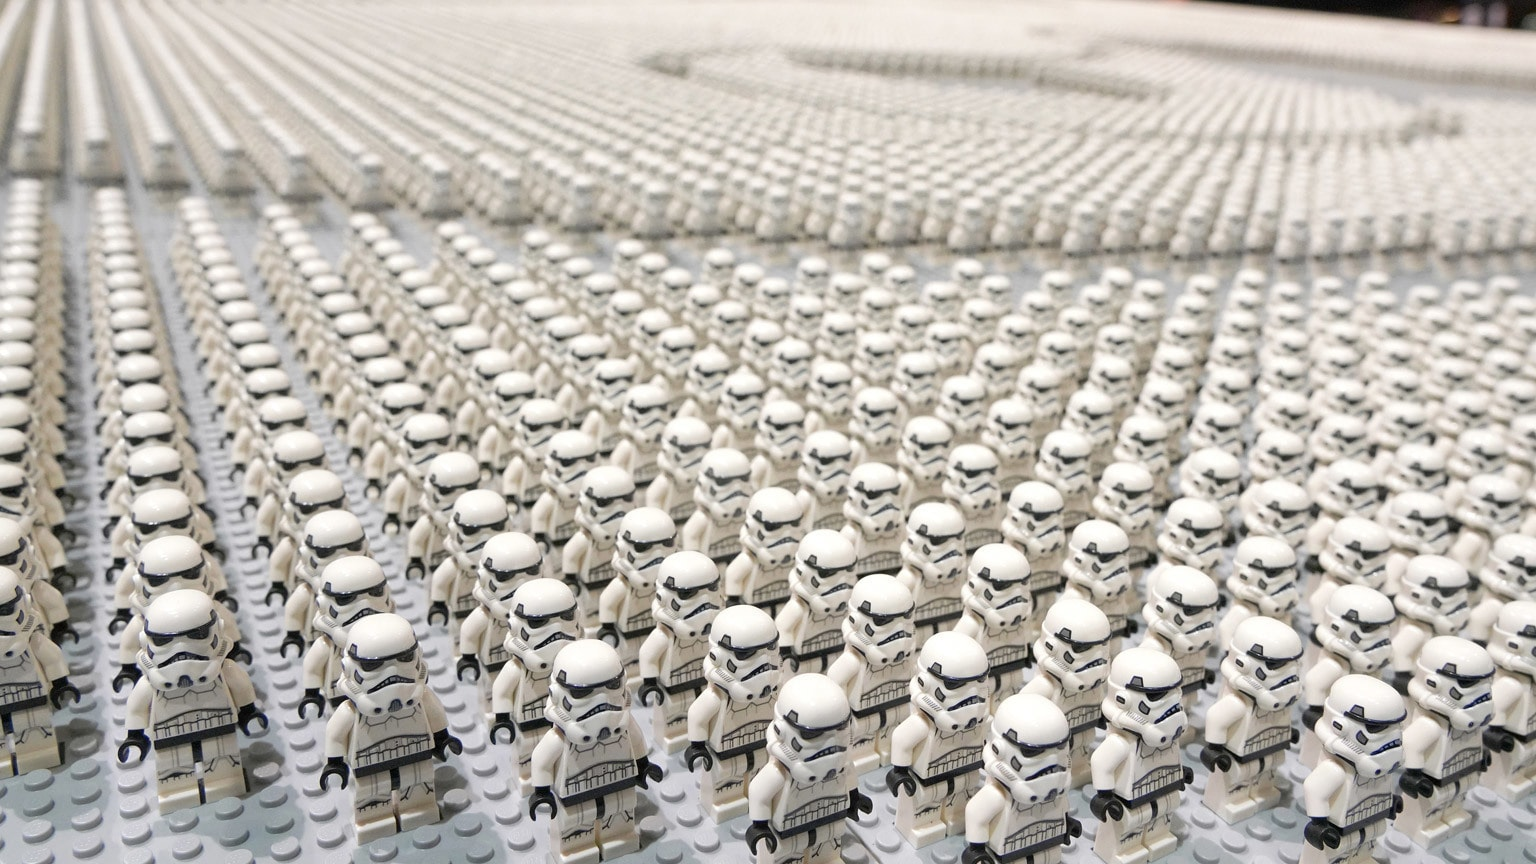 SWCC 2019: LEGO Breaks Guinness World Record with an Army of 36,440 Stormtrooper Minifigures